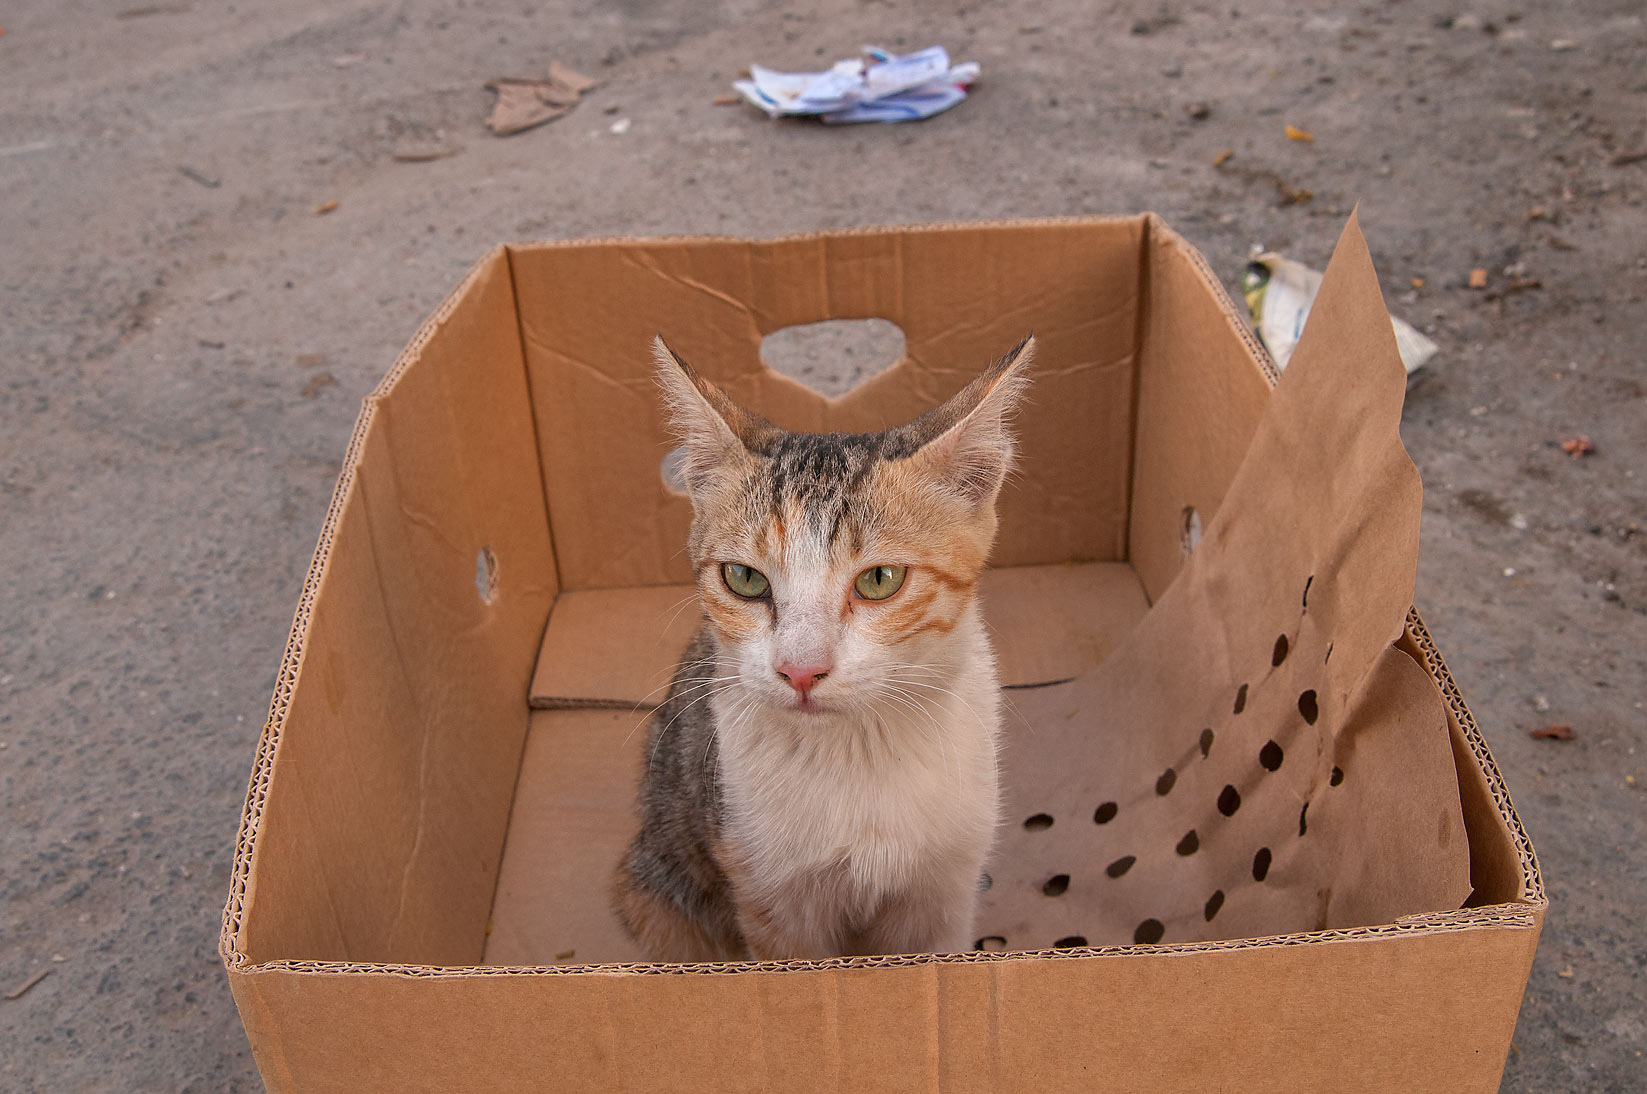 Arabian mau cat sitting in a cardboard box, Musheirib area. Doha, Qatar